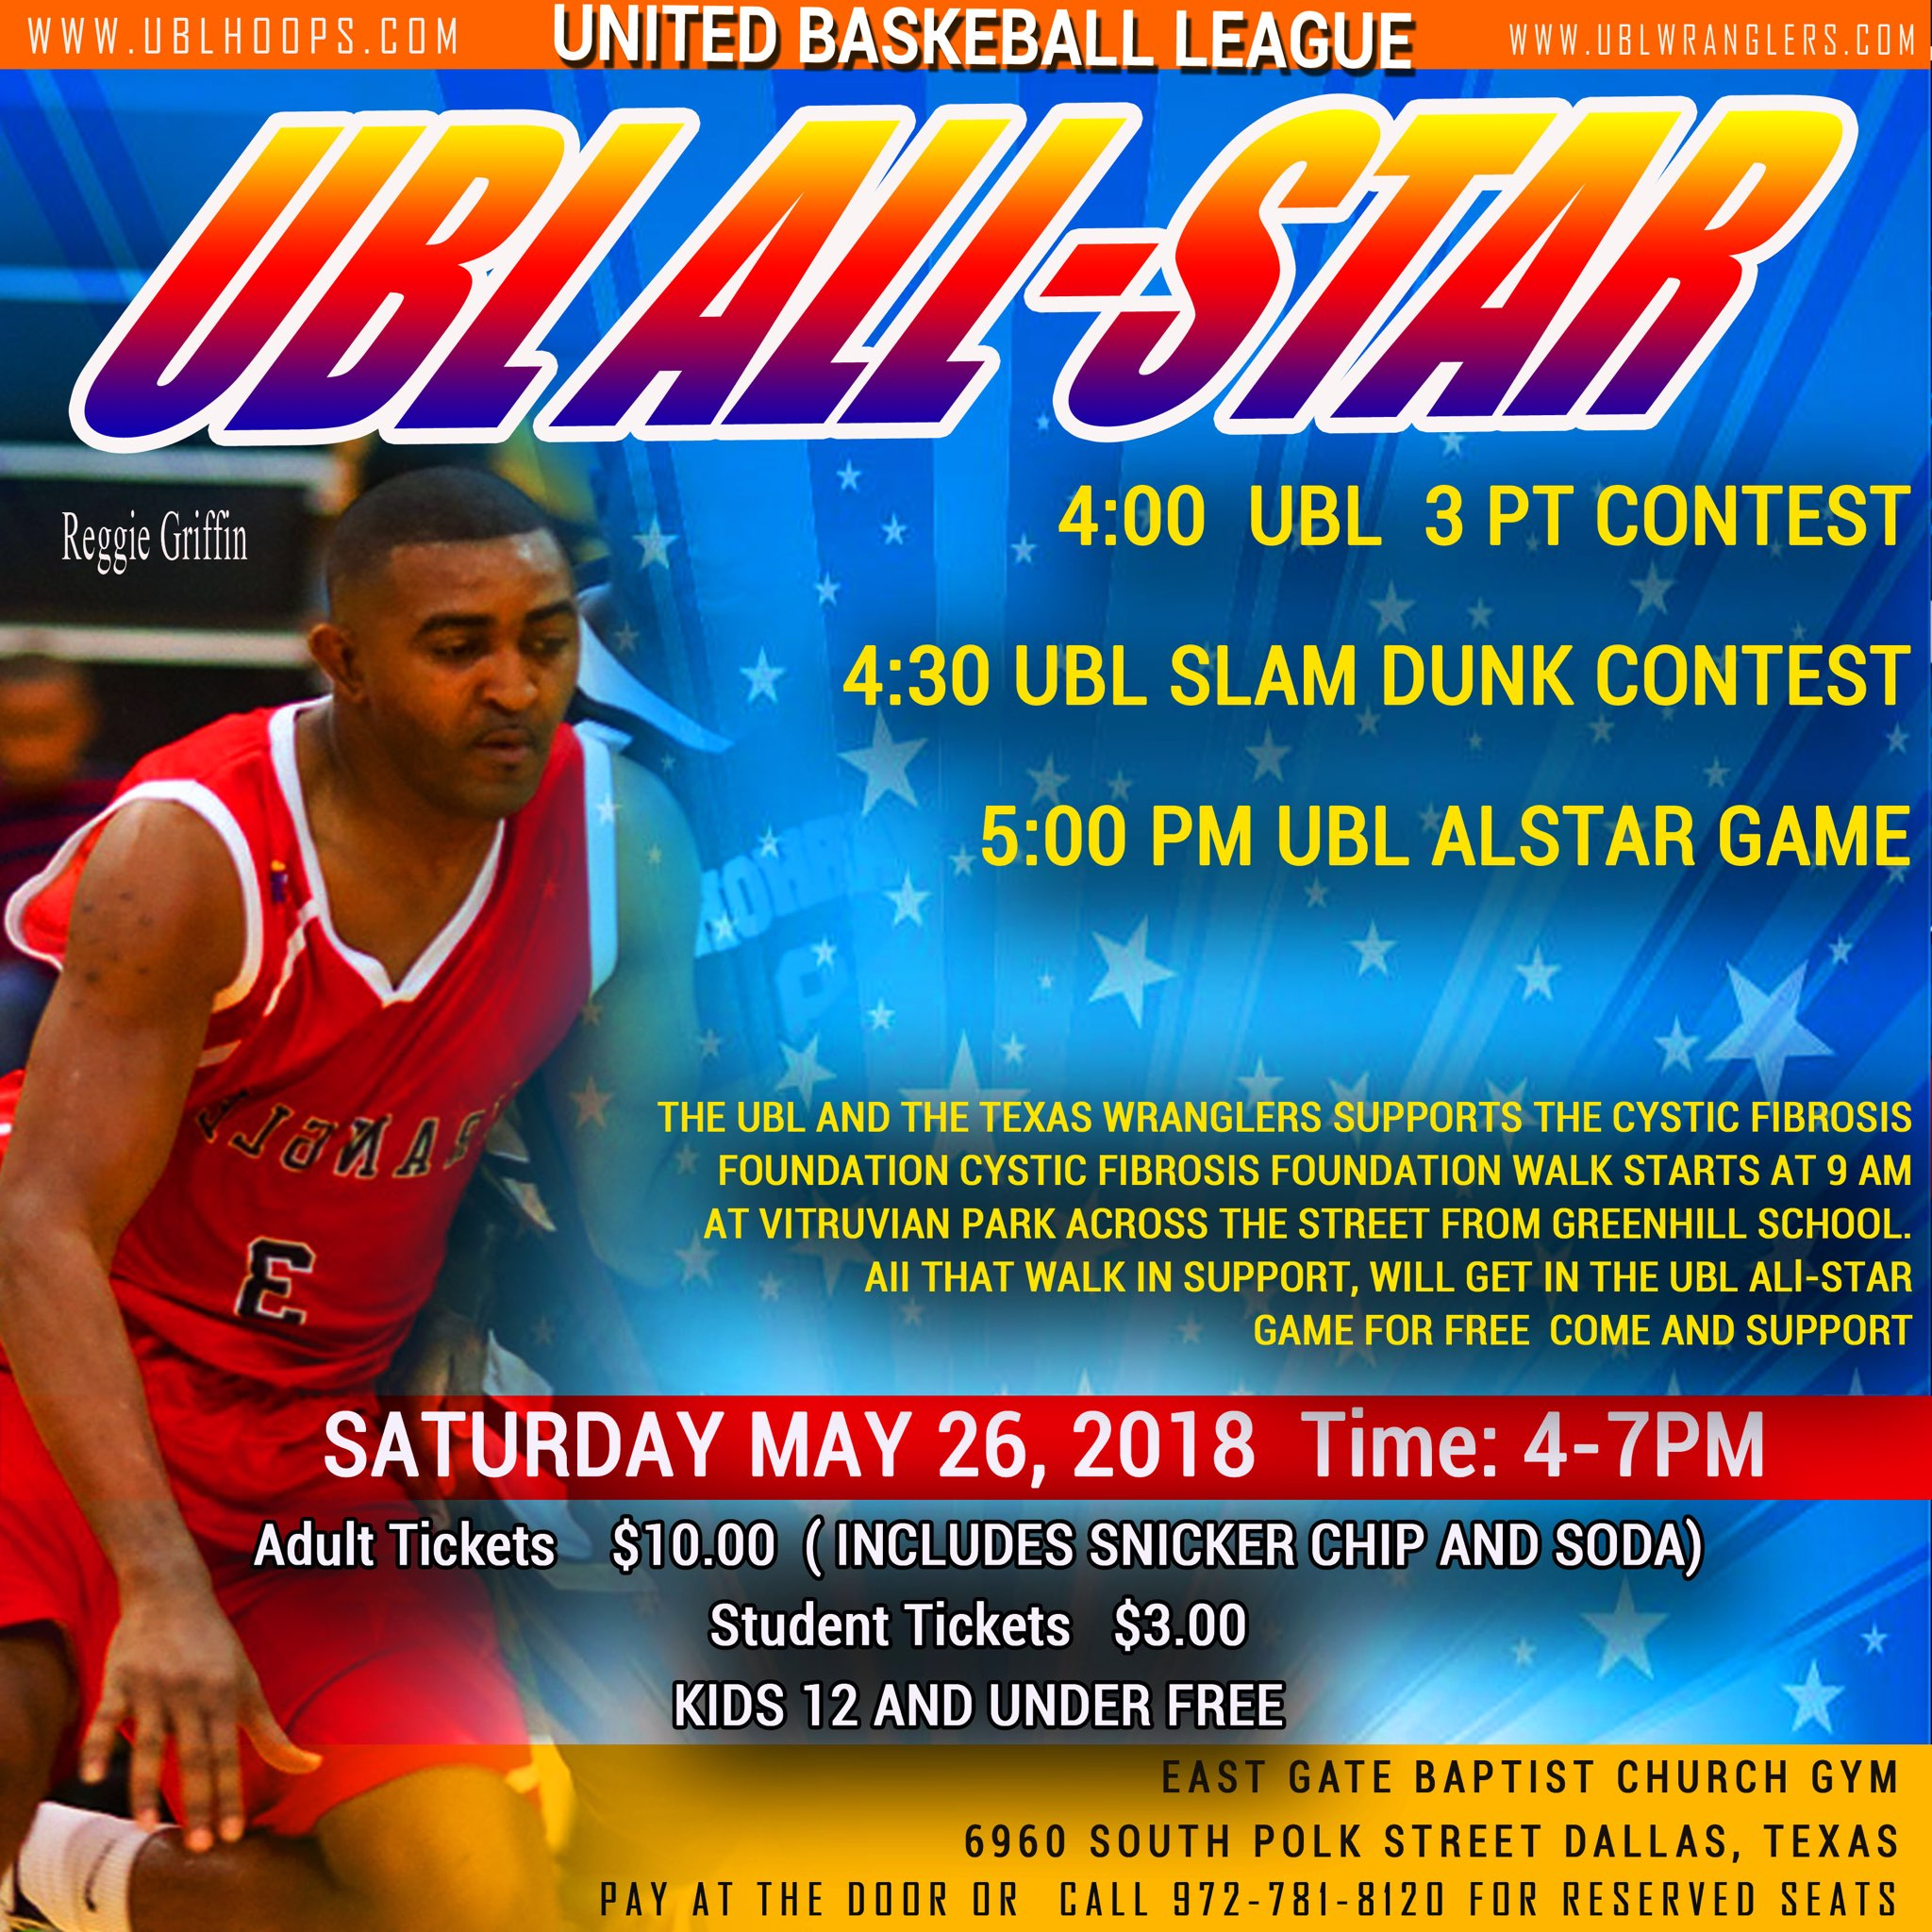 UBL ALL STAR 2018